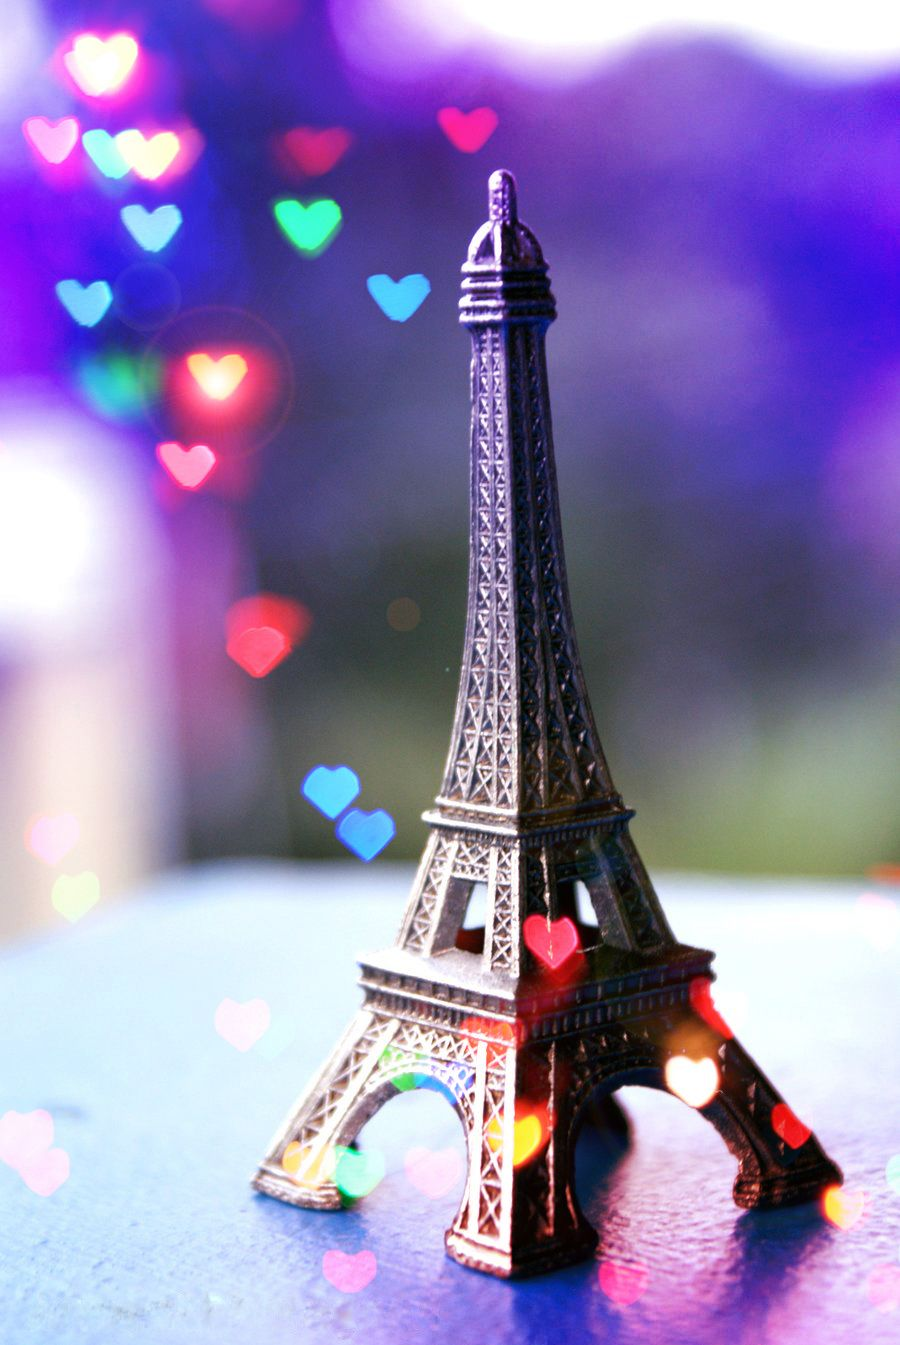 Eiffel Tower By Bantikutz On Deviantart Paris Photography Eiffel Tower Paris Wallpaper Eiffel Tower